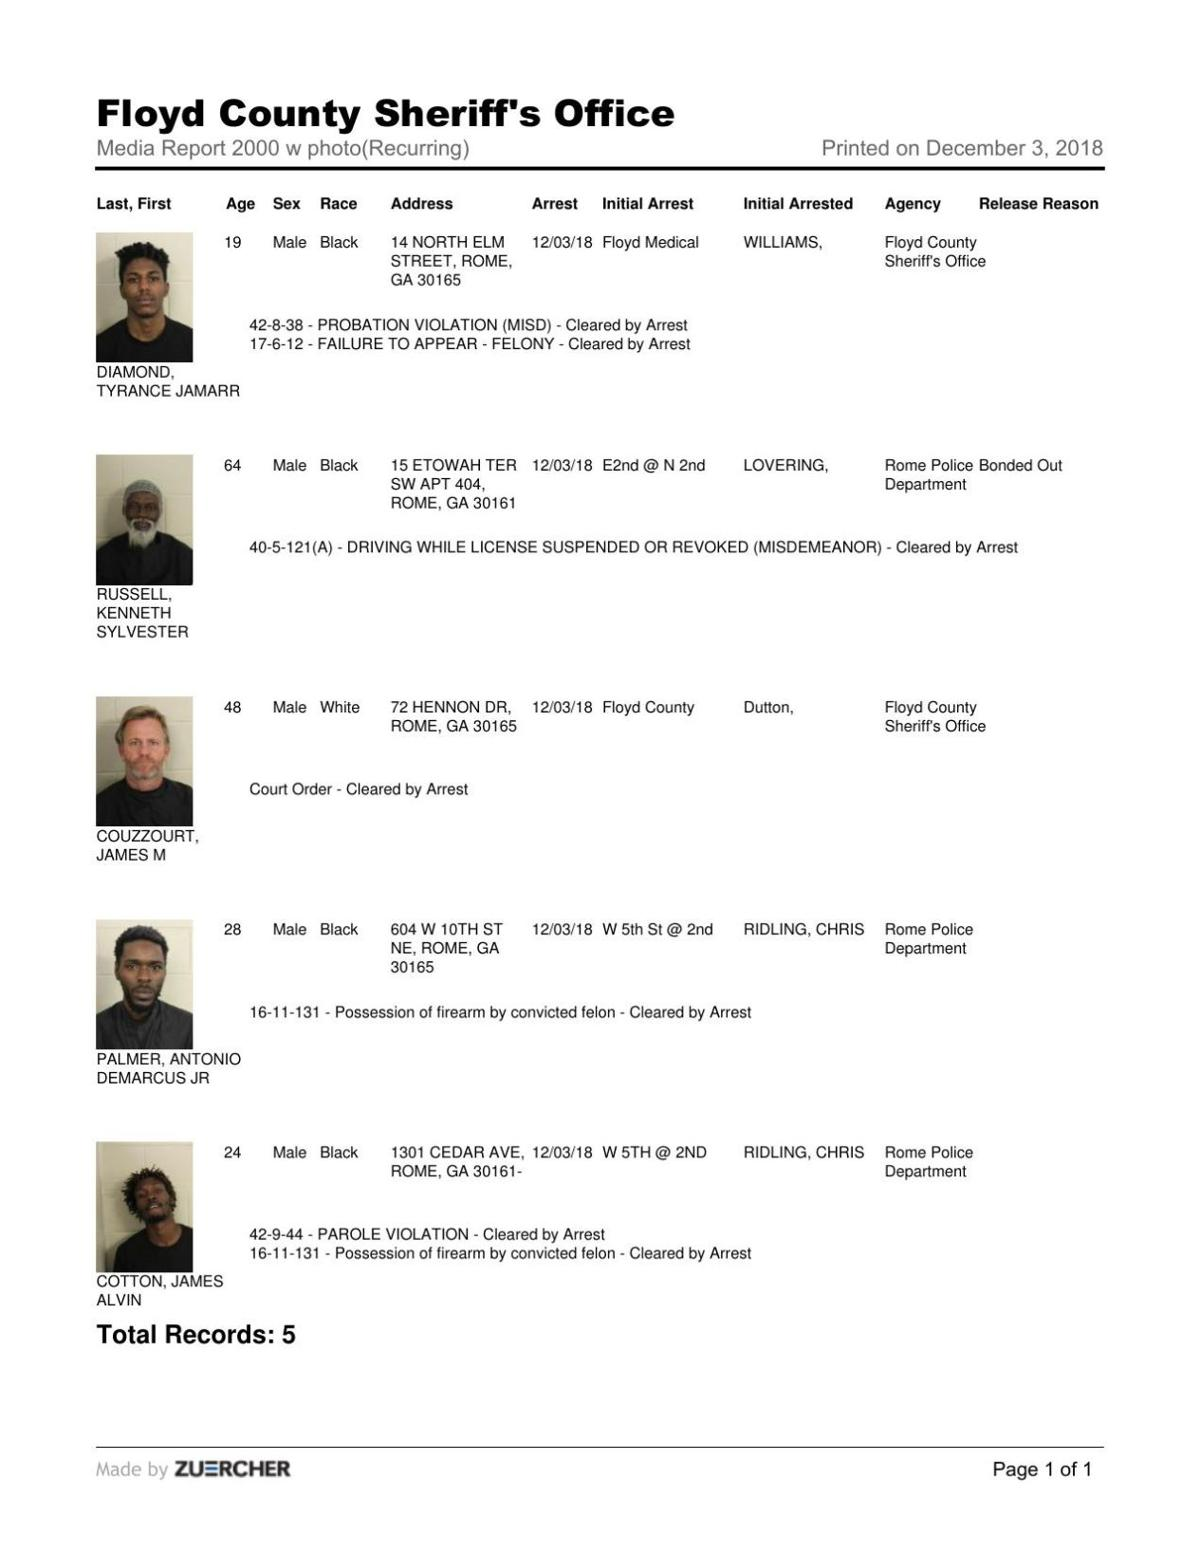 Floyd County Jail report for Monday December 3, 8 p.m.